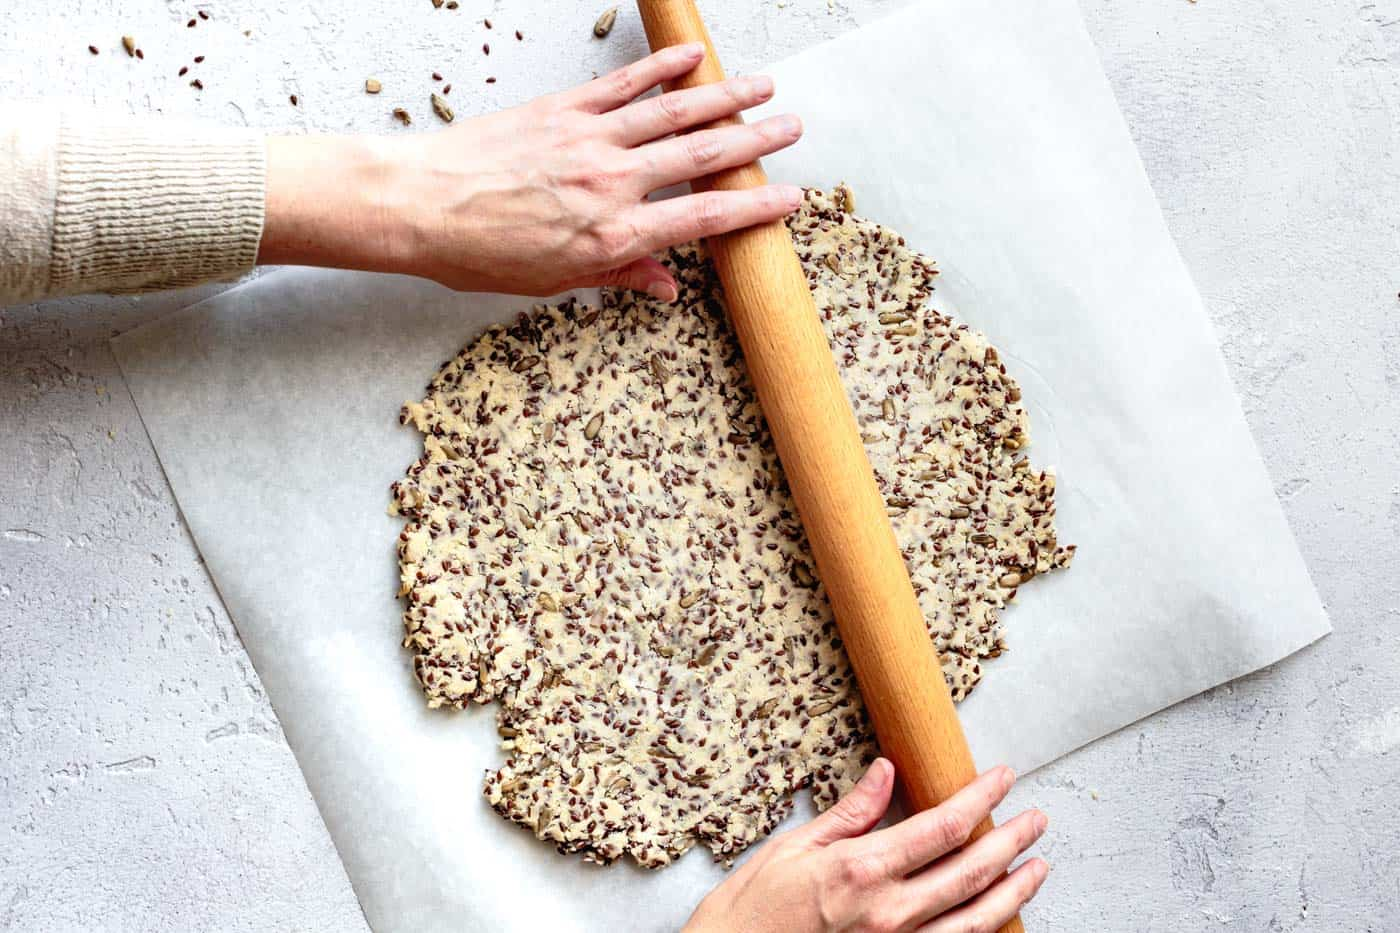 rolling the gluten-free crackers on a piece of parchment paper